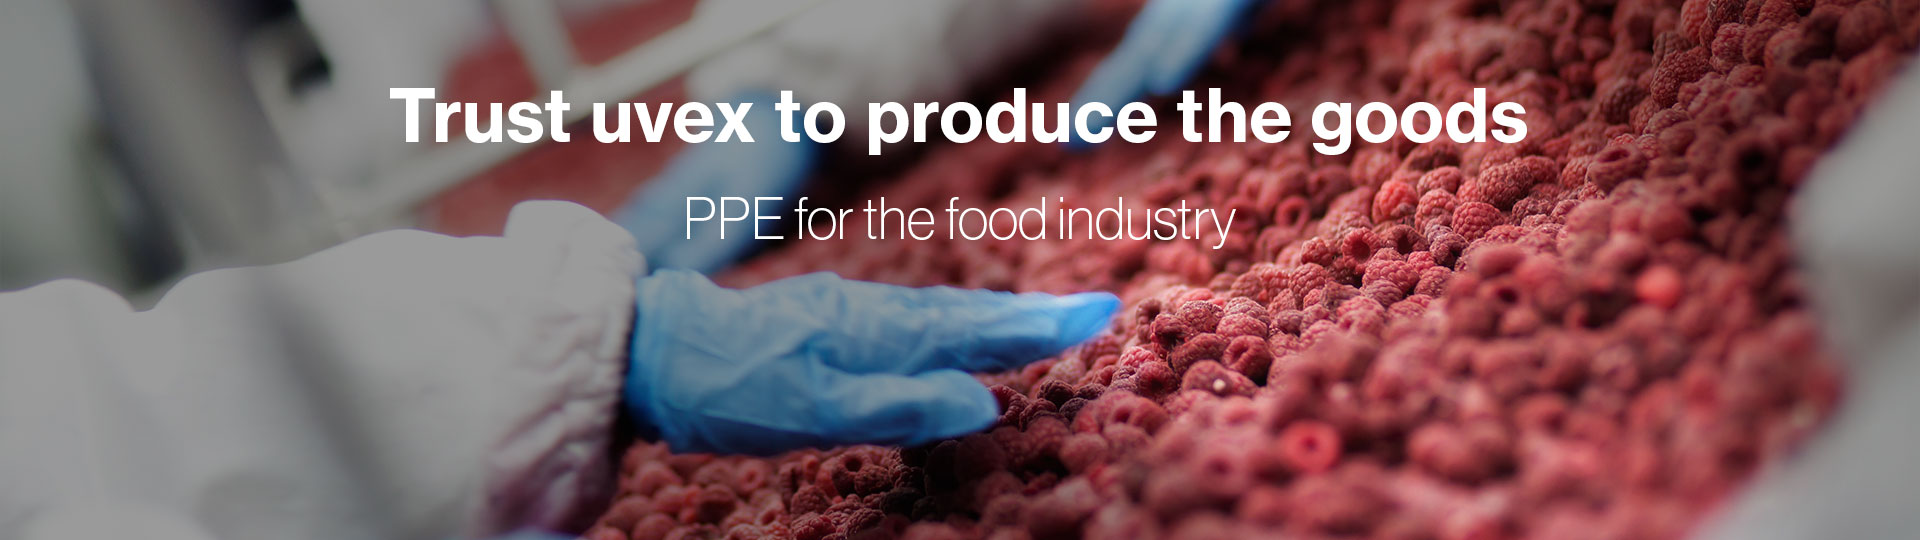 PPE perfectly suited to the food industry